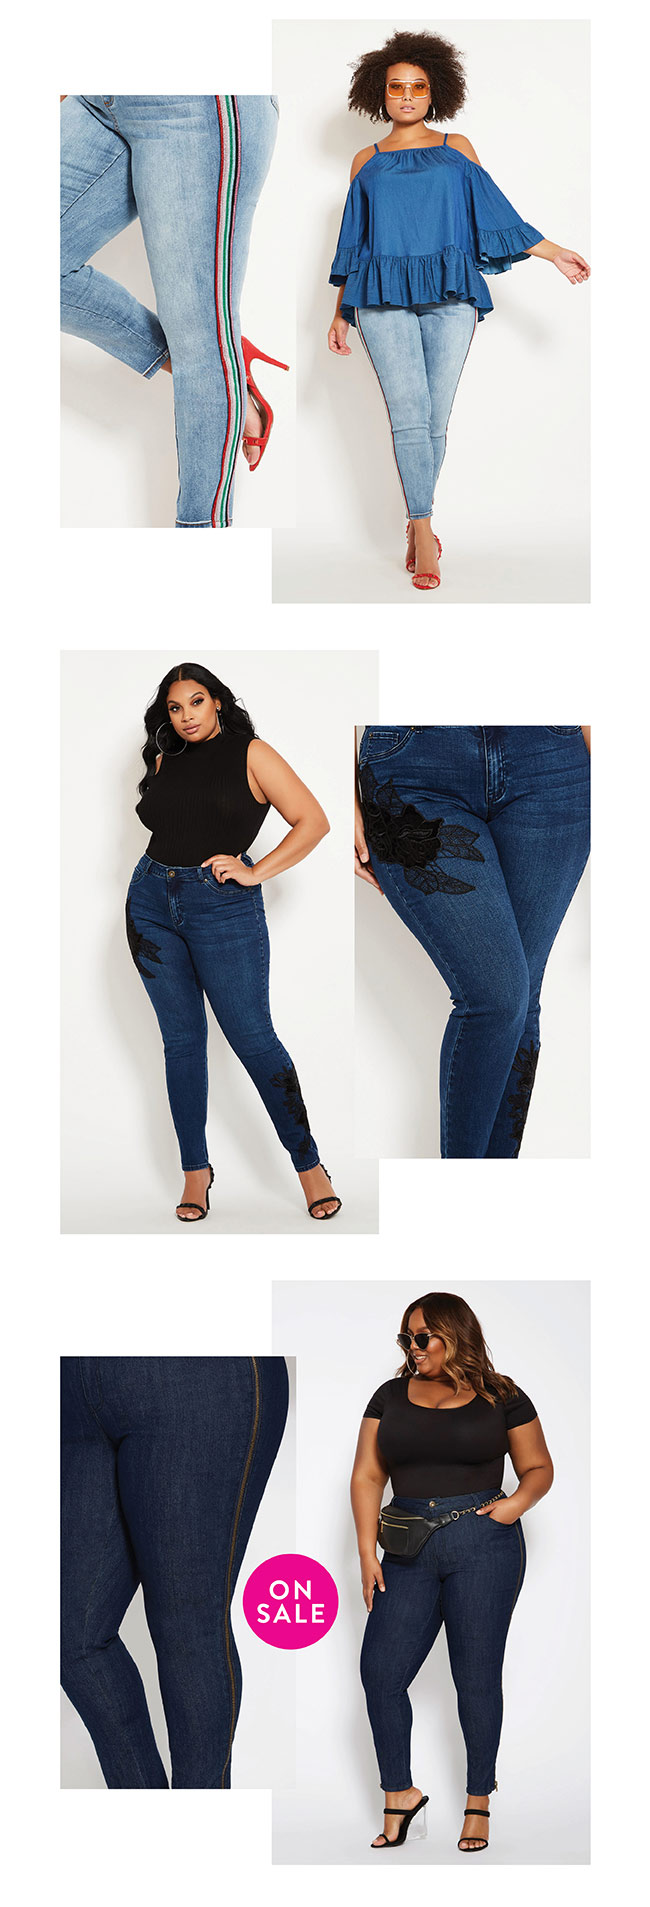 You will love my side of jeans - Shop Now